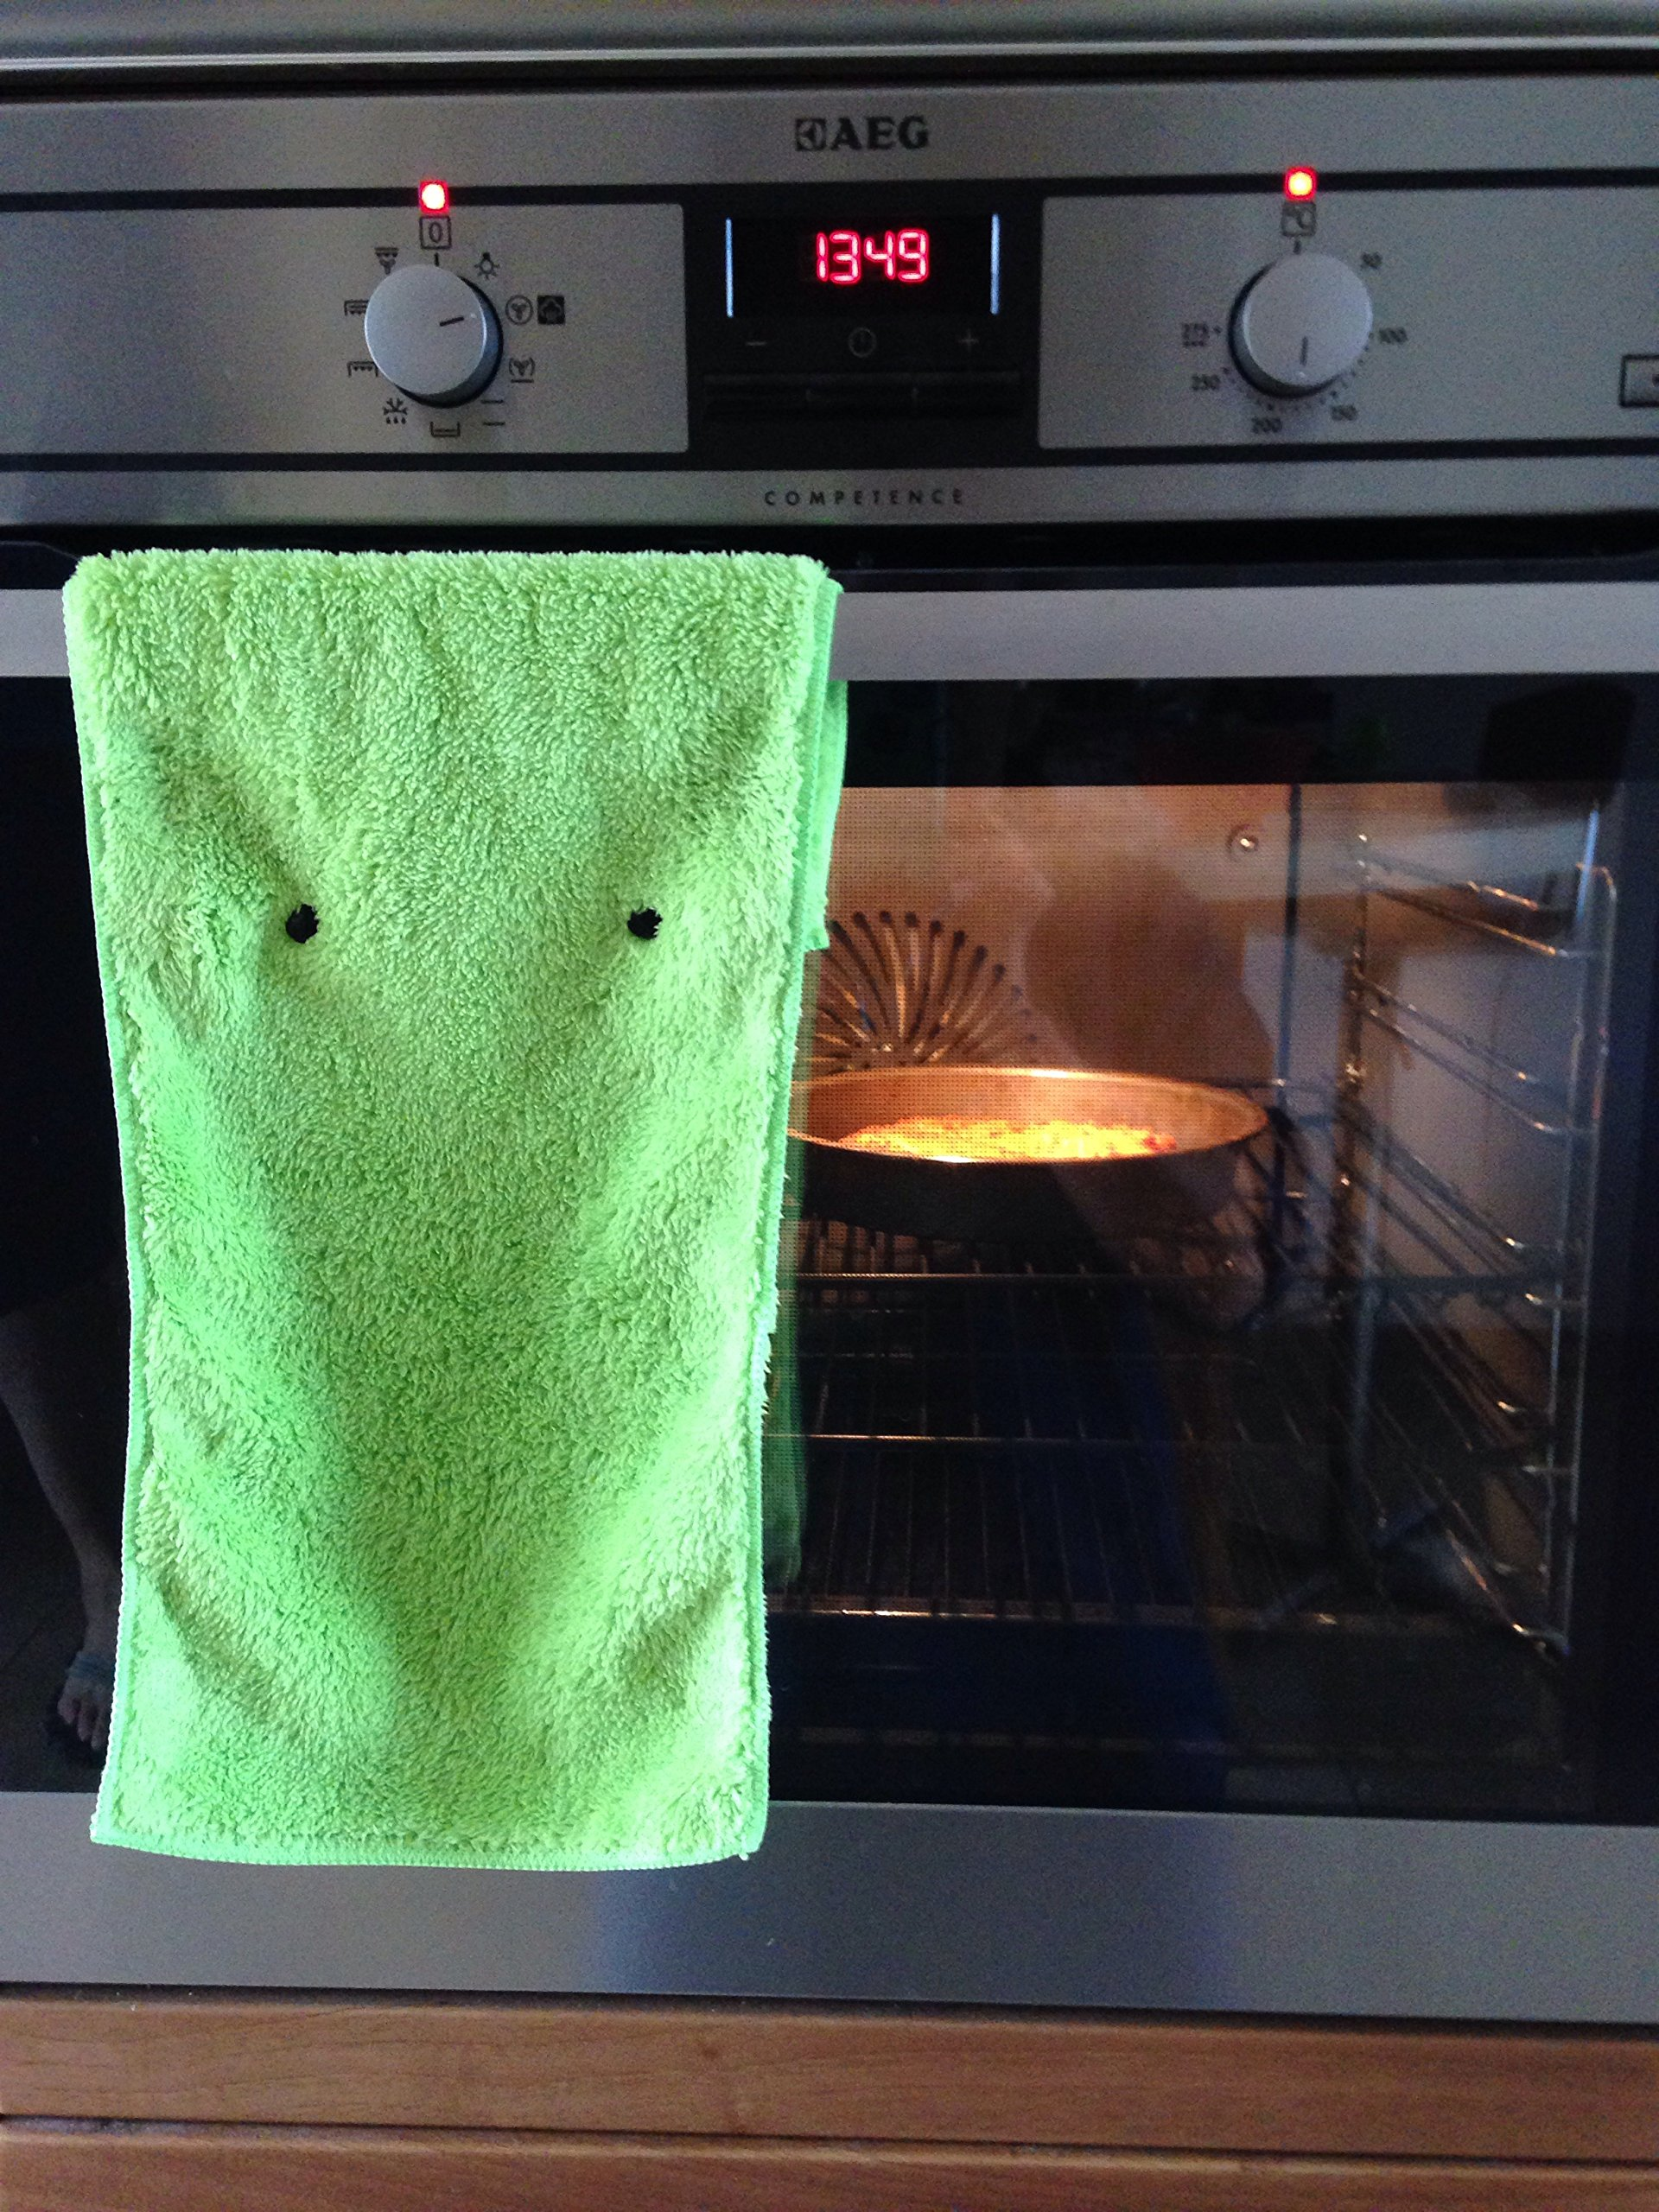 Hanging Hand Towels with Snap Fastener - Set of 3 Lime Green, Hanging Kitchen Hand Towels, Hanging Bathroom Hand Towels, Soft, Quick Drying, Microfiber Fluffy Fingertip Towels by Taylors of Kent (Image #8)